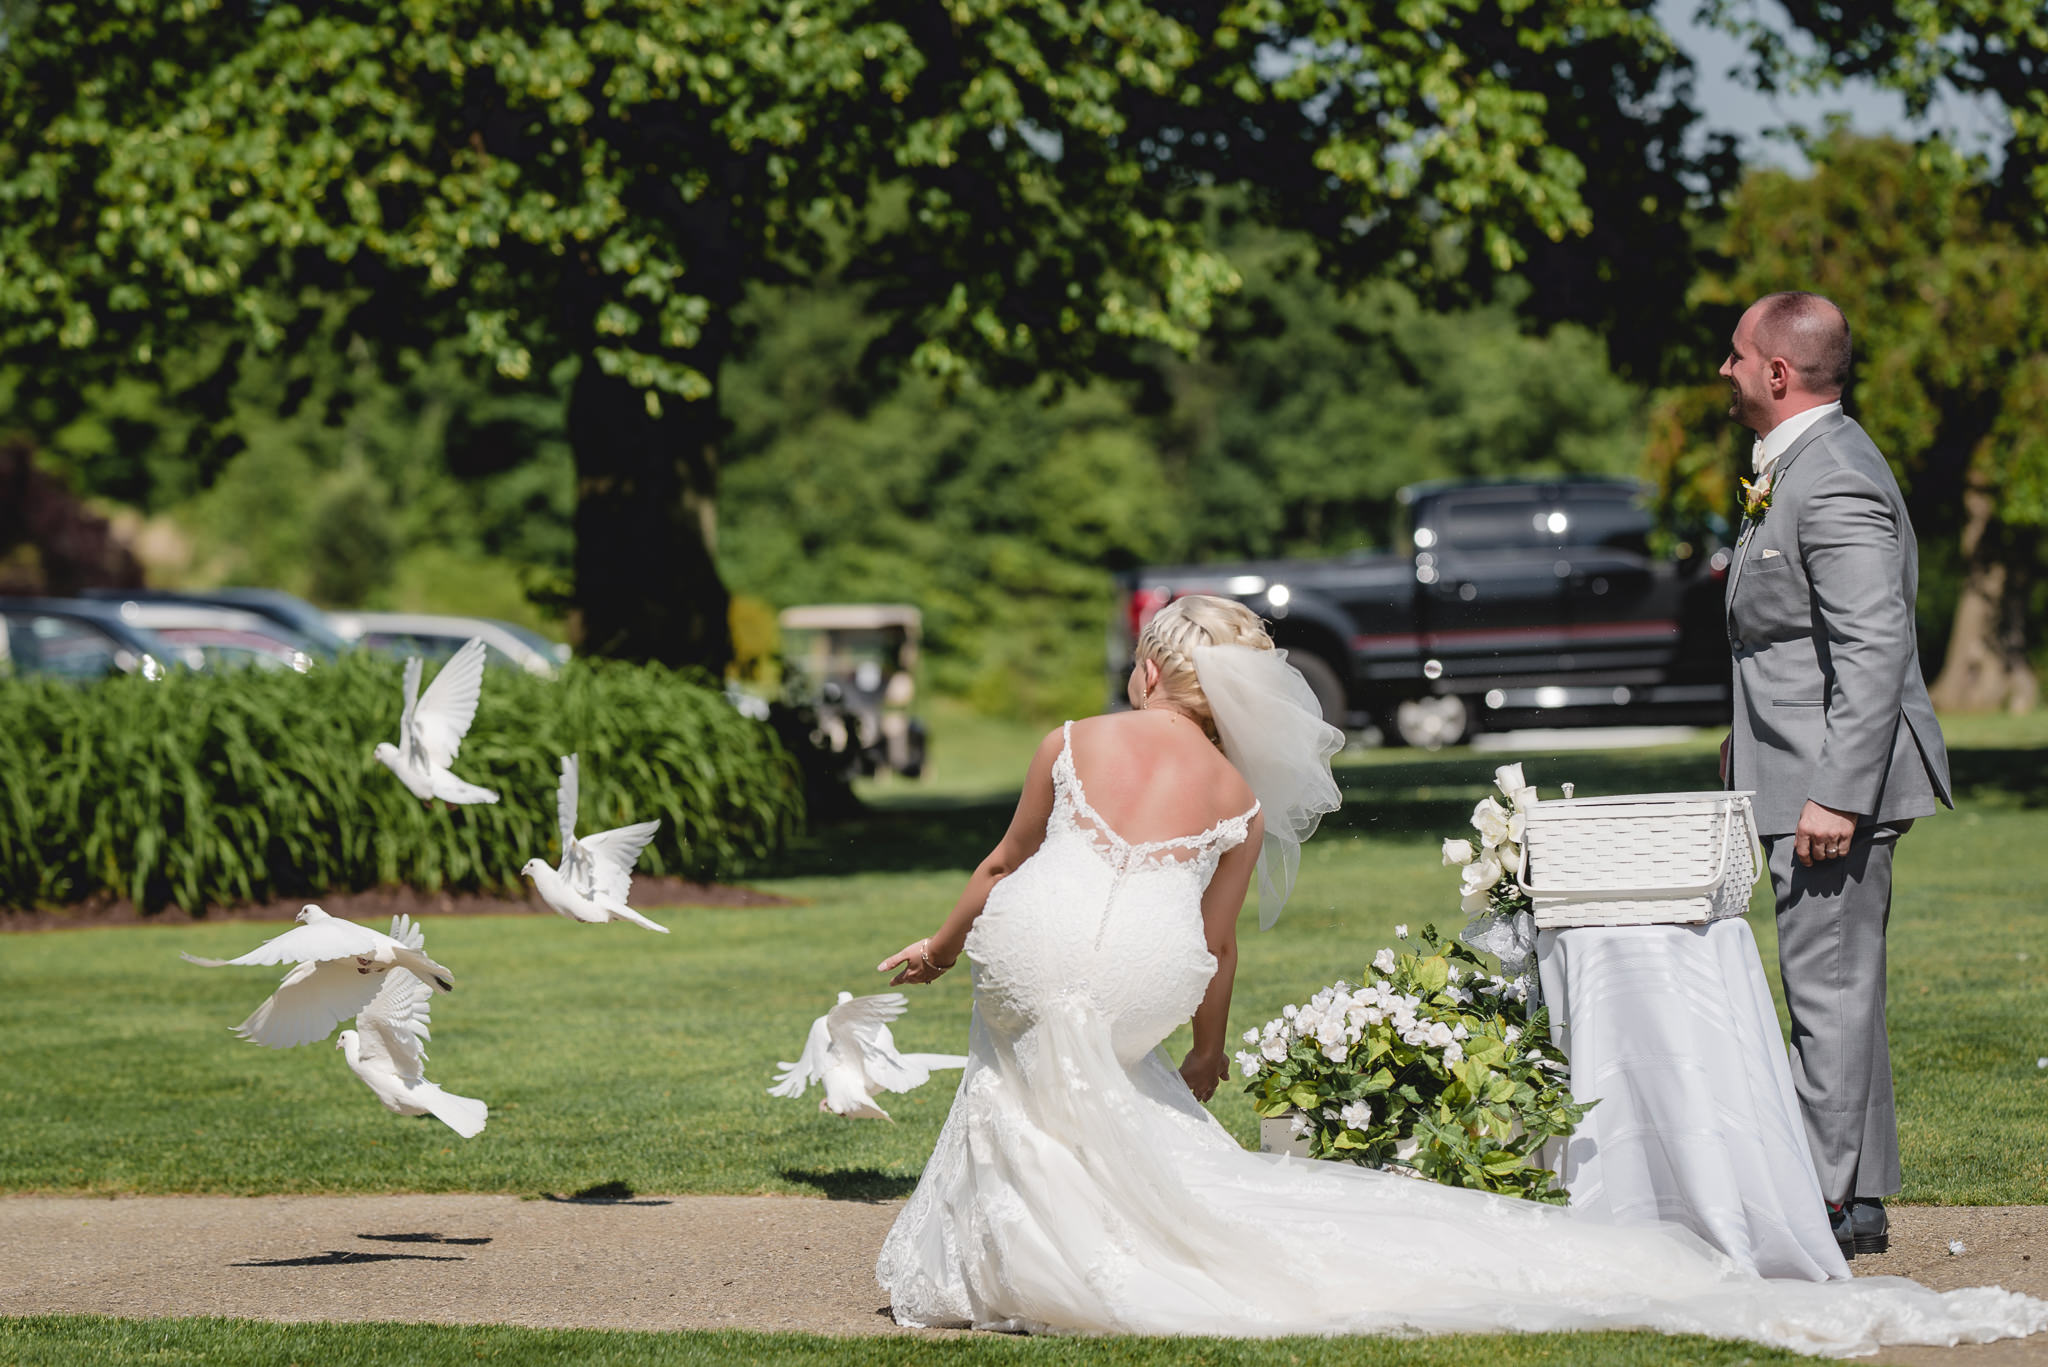 Bride and groom release white doves at the wedding ceremony